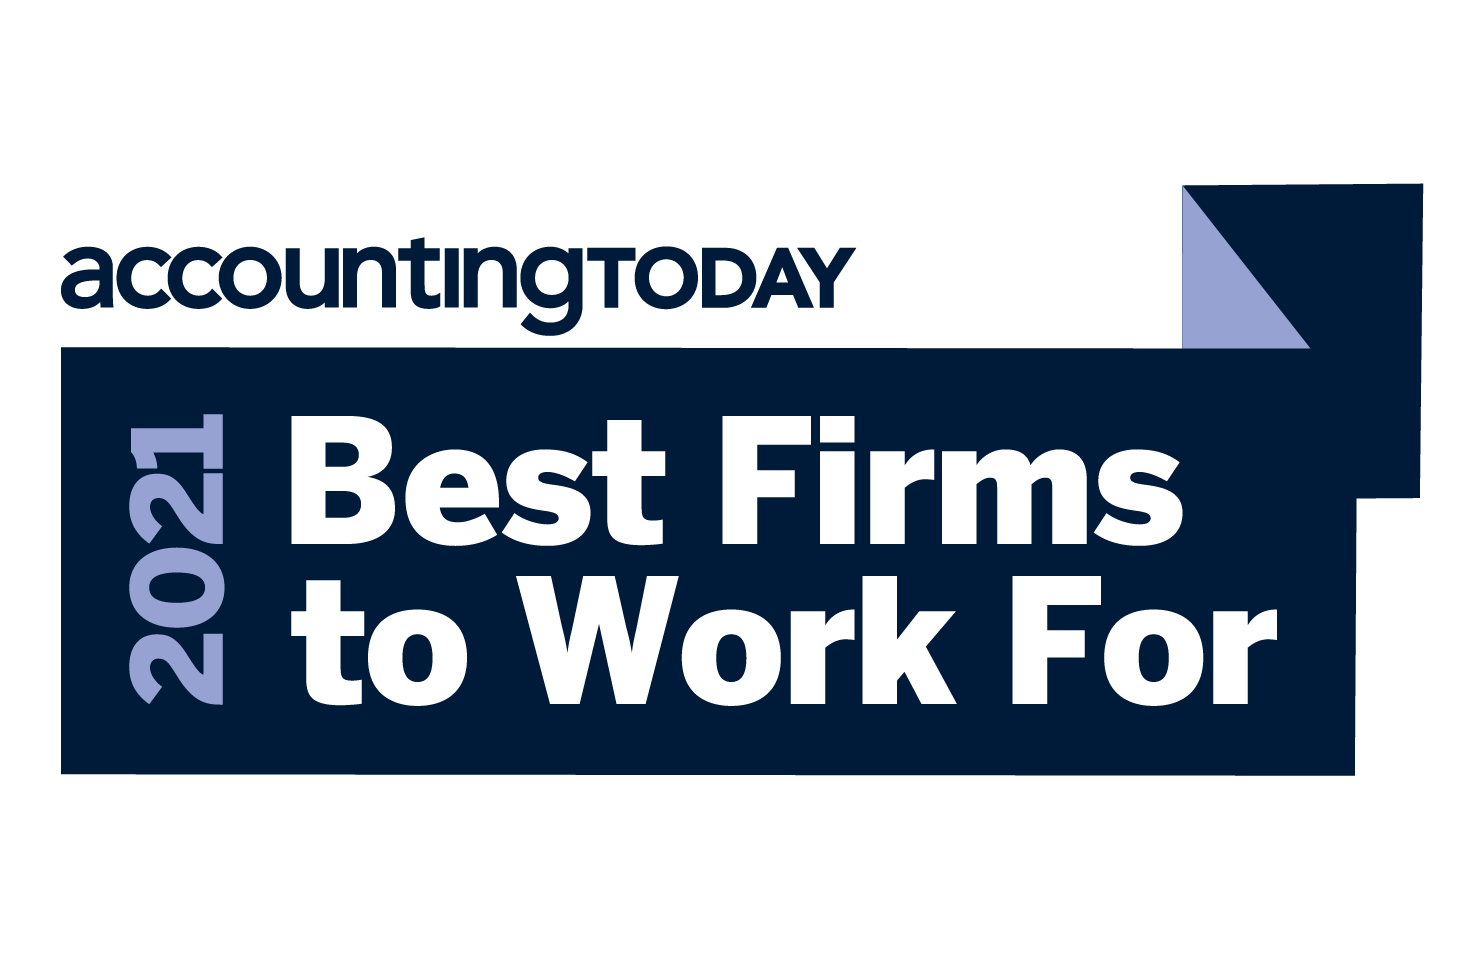 AccountingToday 2021 Best Firms to Work for award.